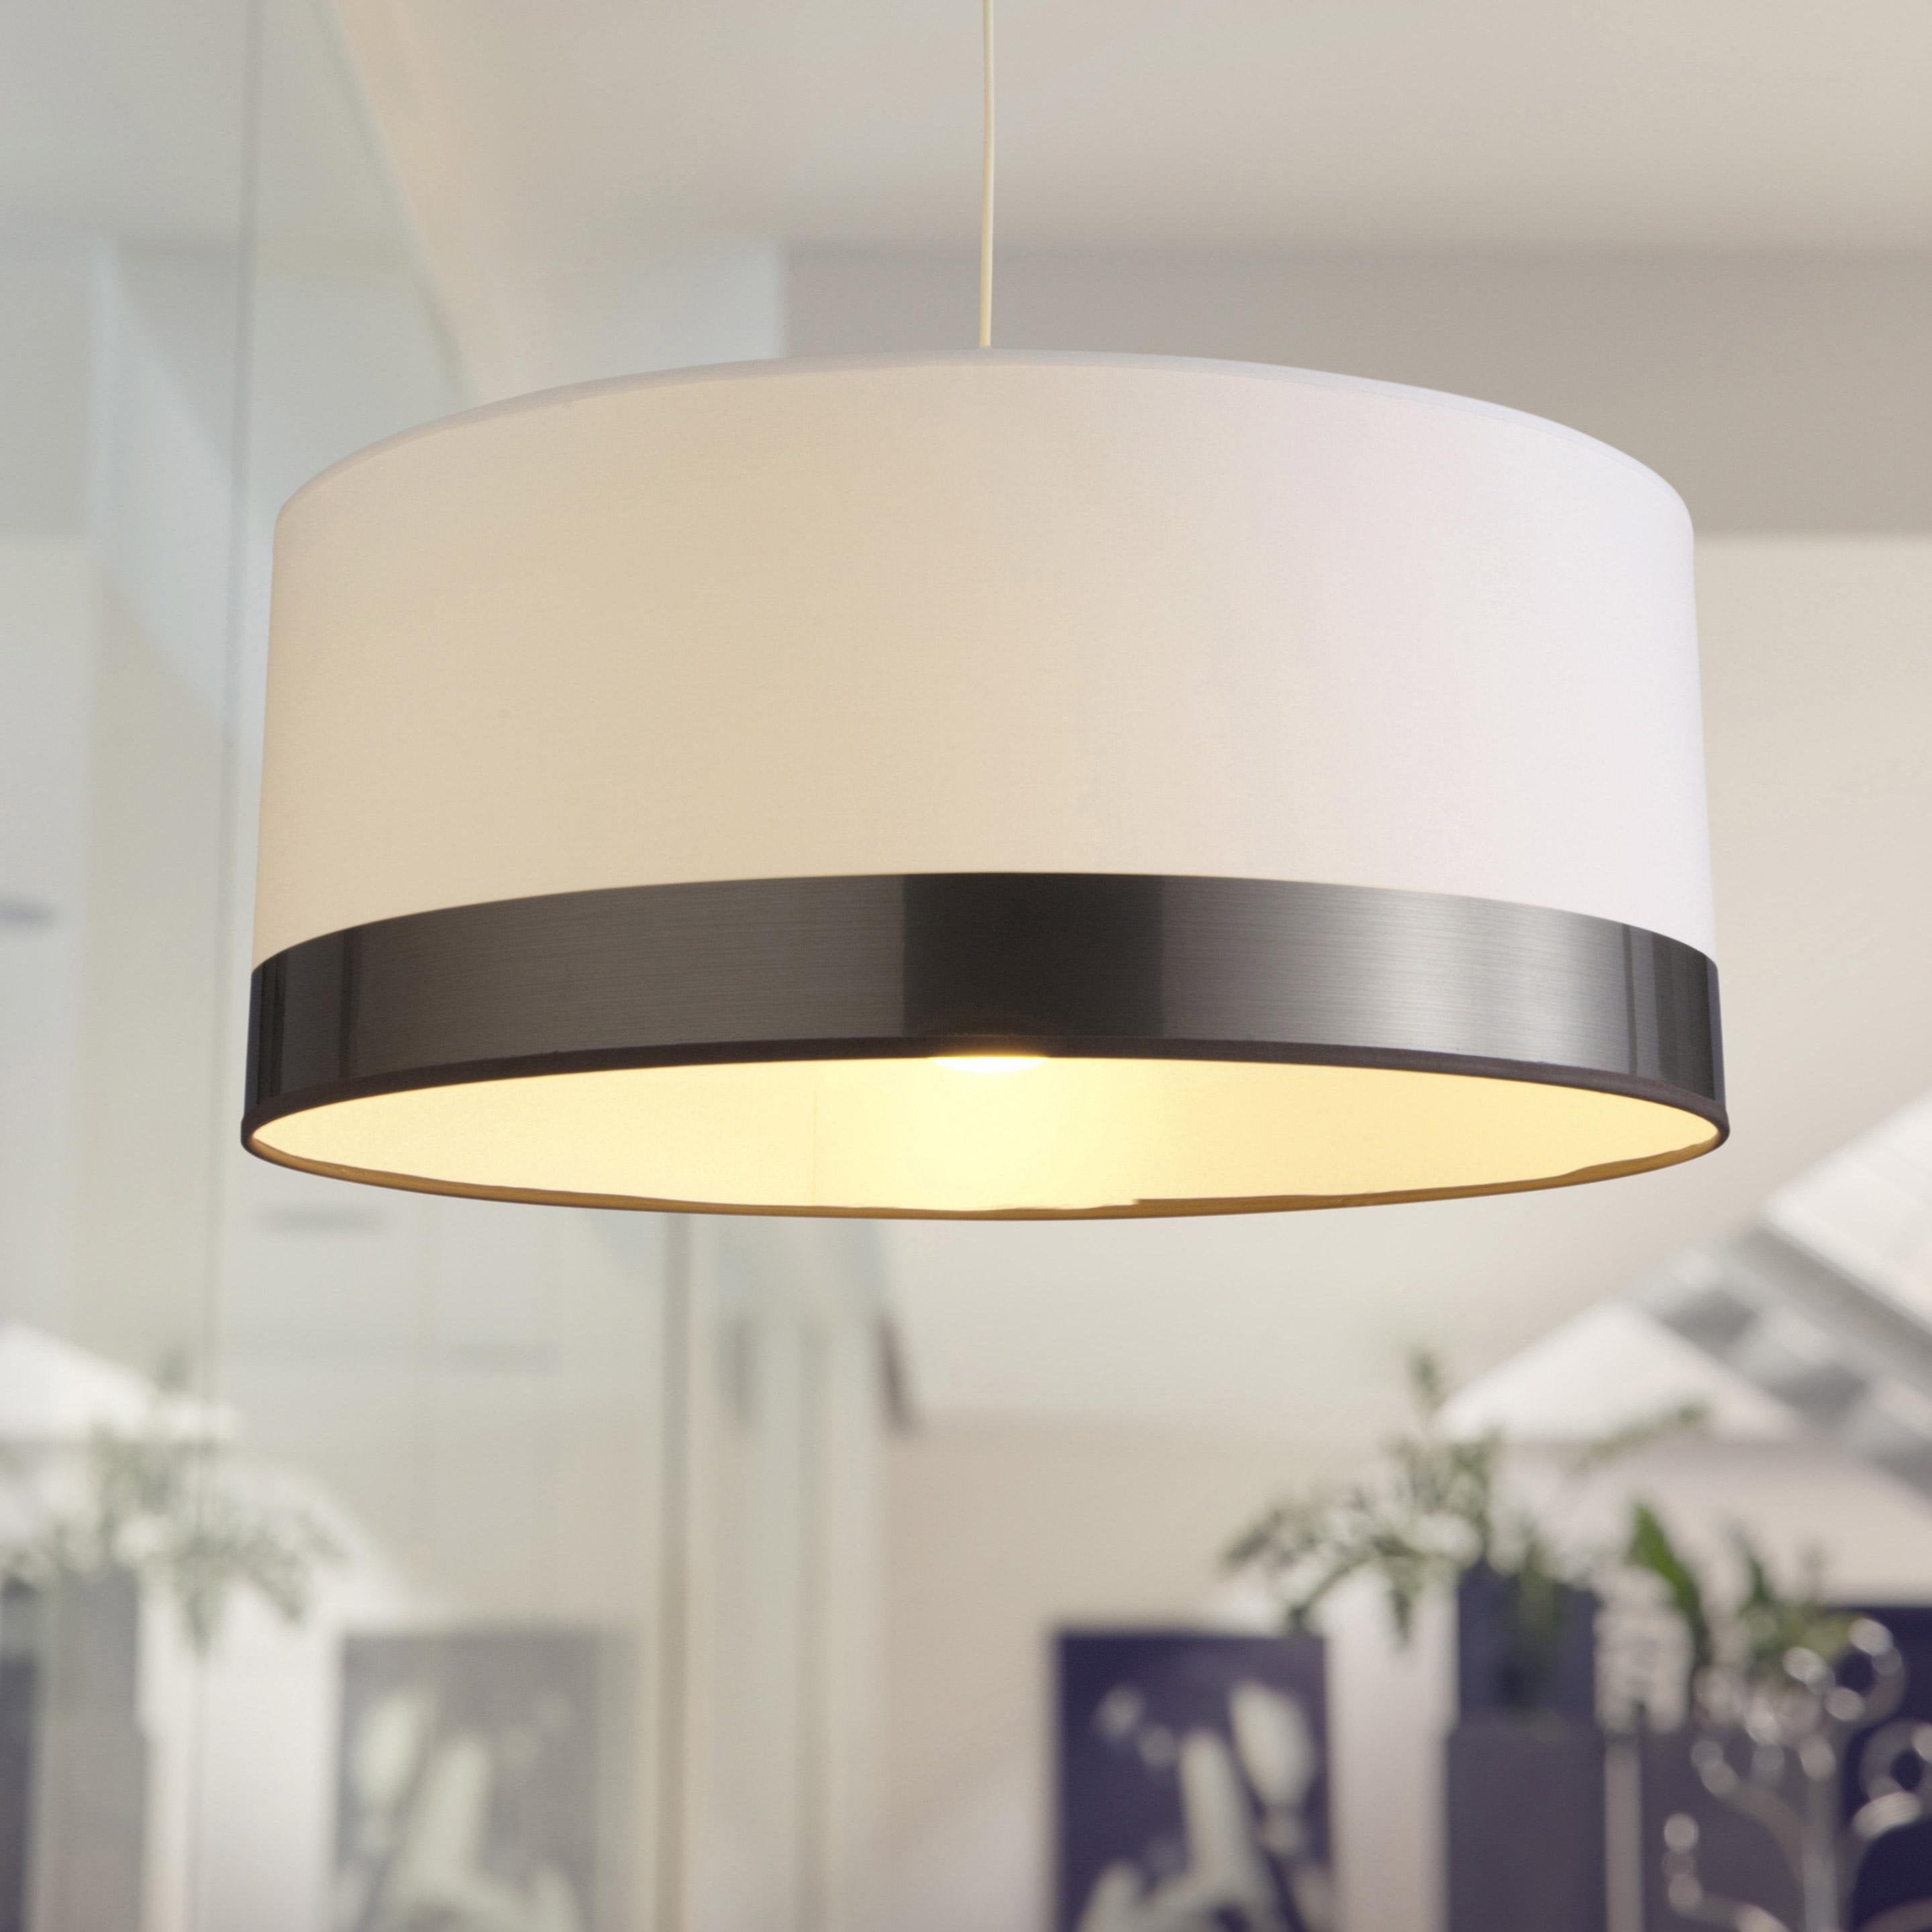 Suspension, e27 design Silver coton blanc 1 x 60 W METROPOLIGHT